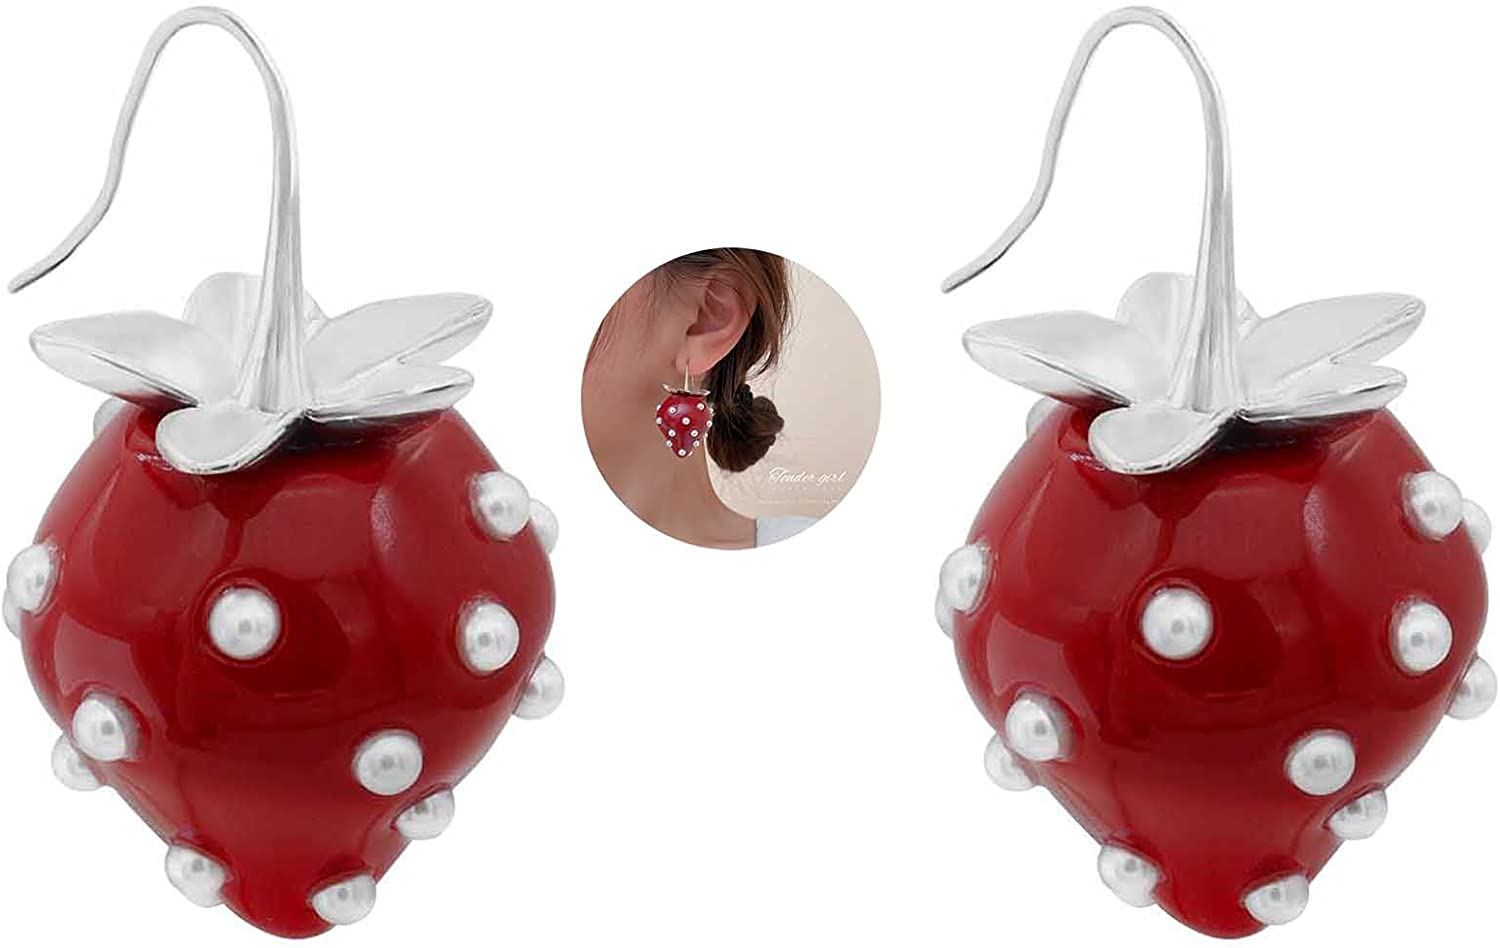 Strawberry Earring - Cute Stereoscopic Red Strawberry Dangle Earring, Big Simulated Fruit 3d Strawberry Acrylic Strawberry Earring